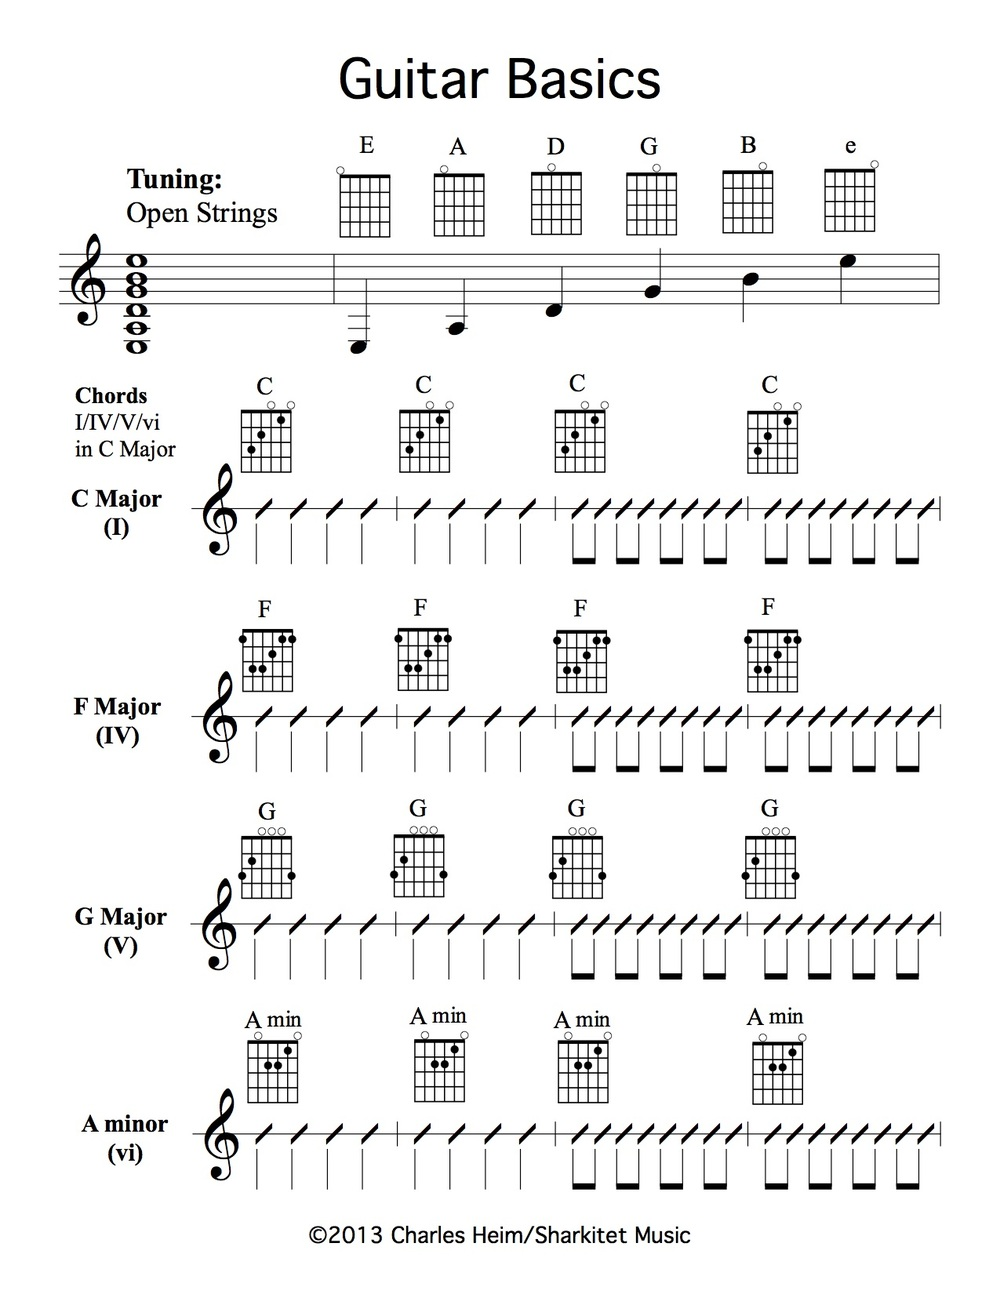 Guitar Basics in C.jpg